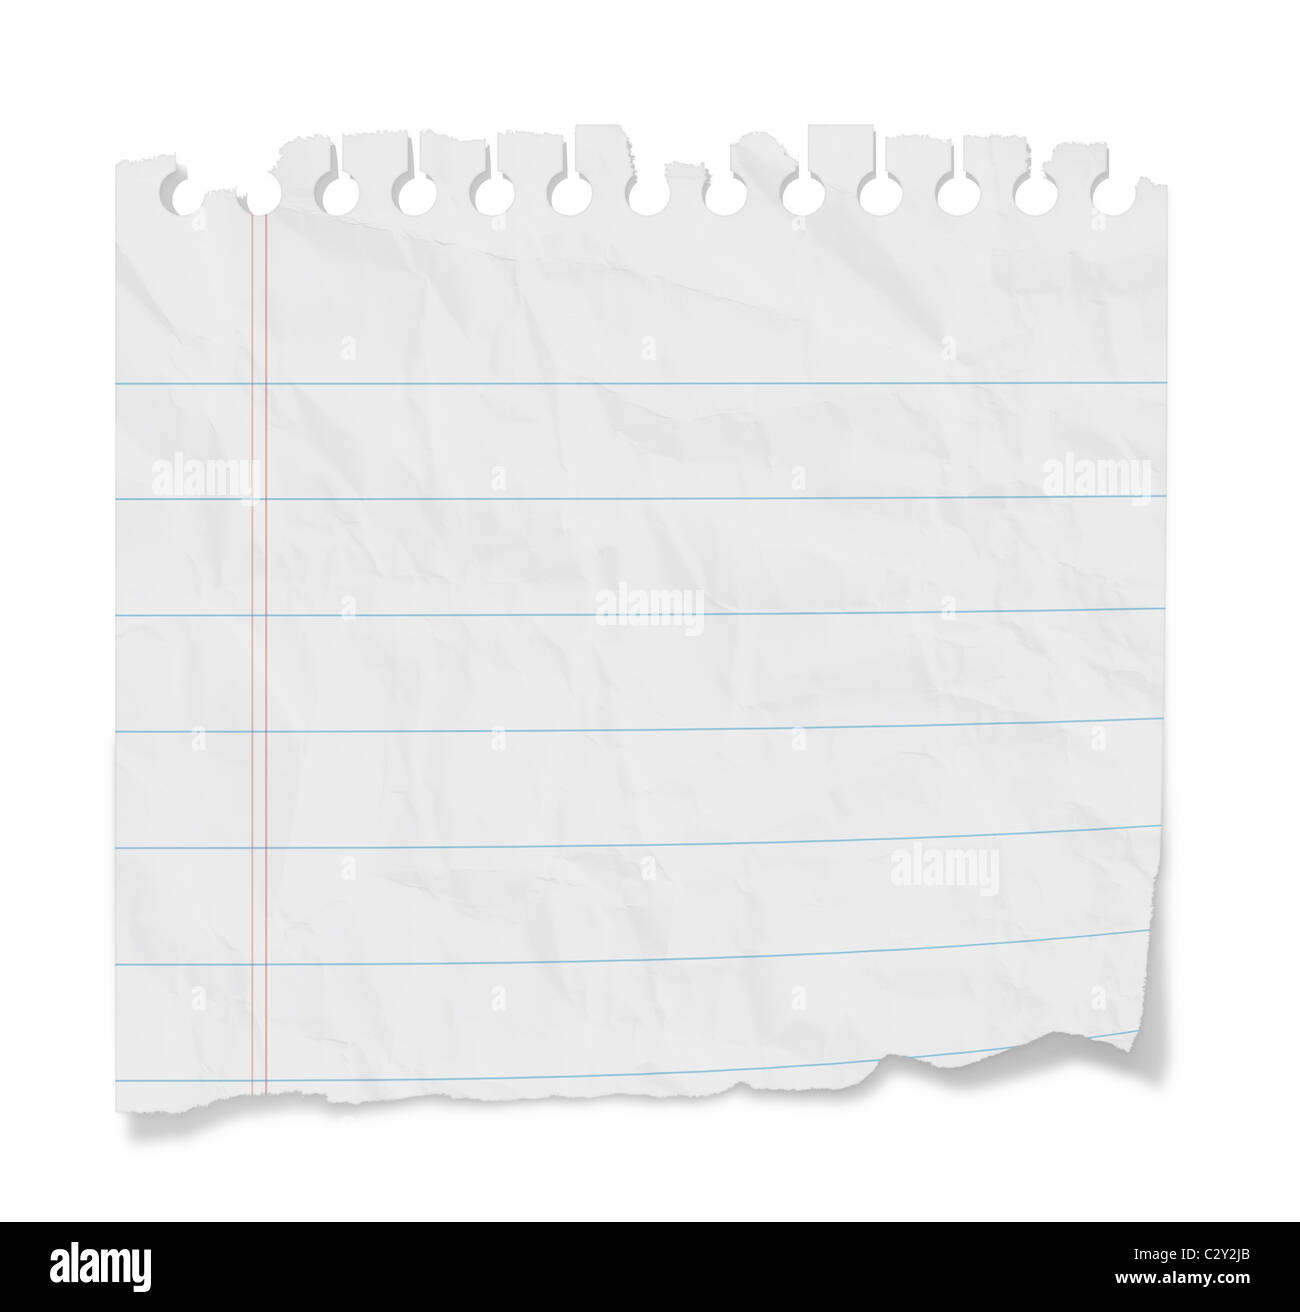 Torn Blank Lined Paper From A Notepad With Shadows. Isolated On A White  Background With Clipping Path  Blank Lined Paper Template